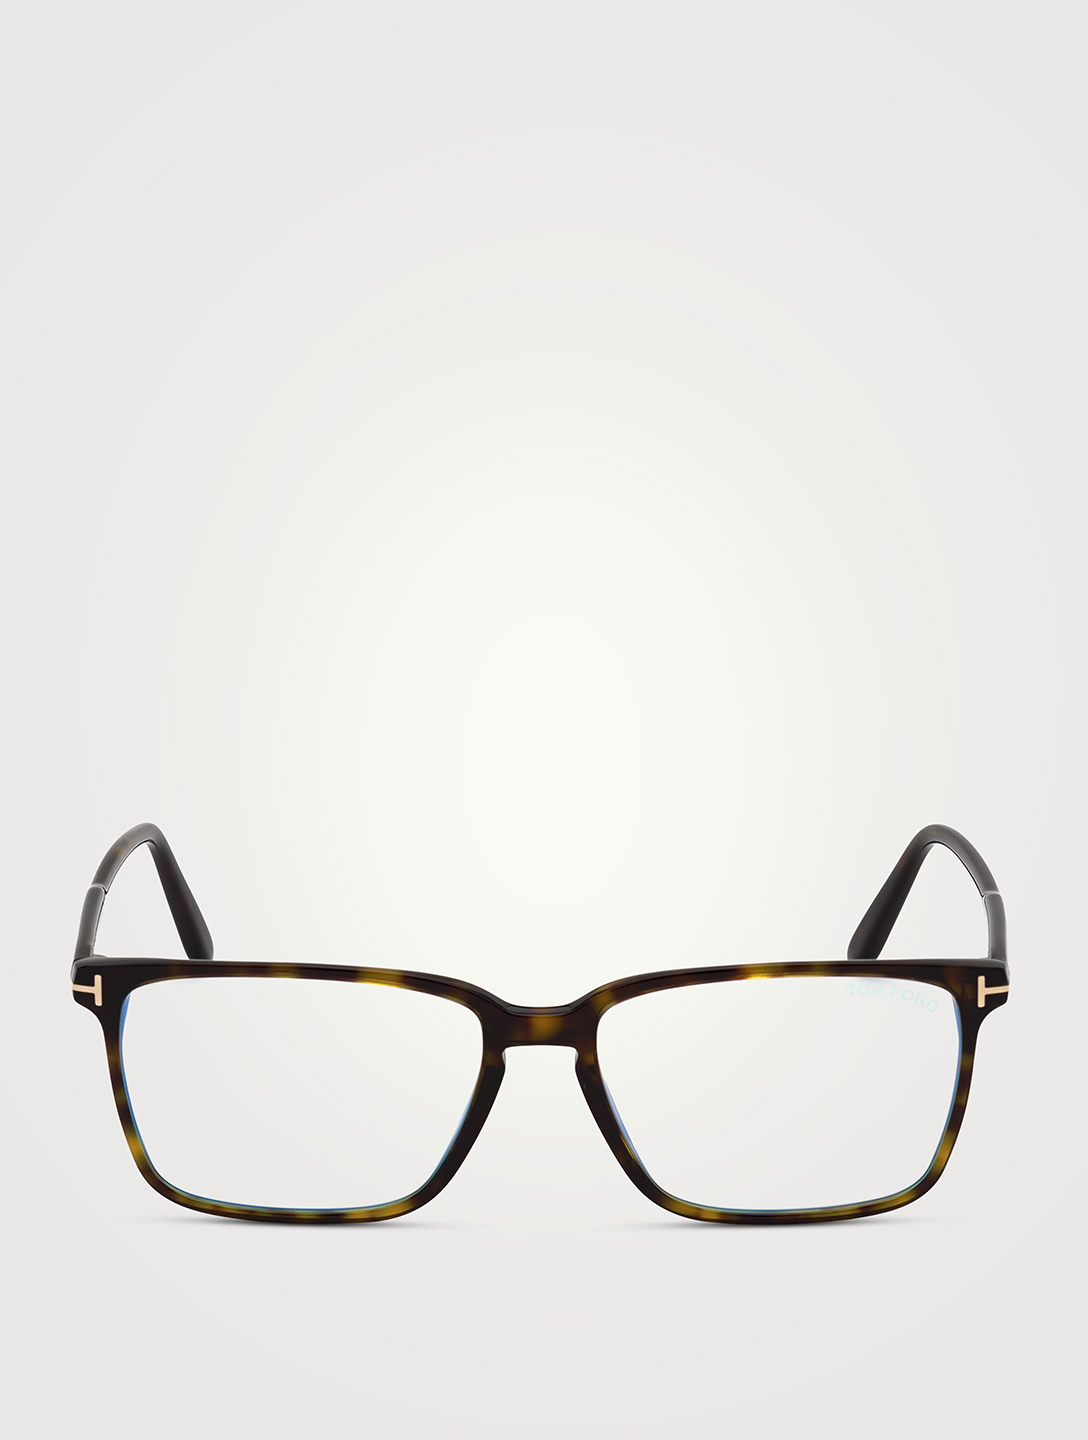 TOM FORD Rectangular Optical Glasses With Blue Block Lenses Men's Brown